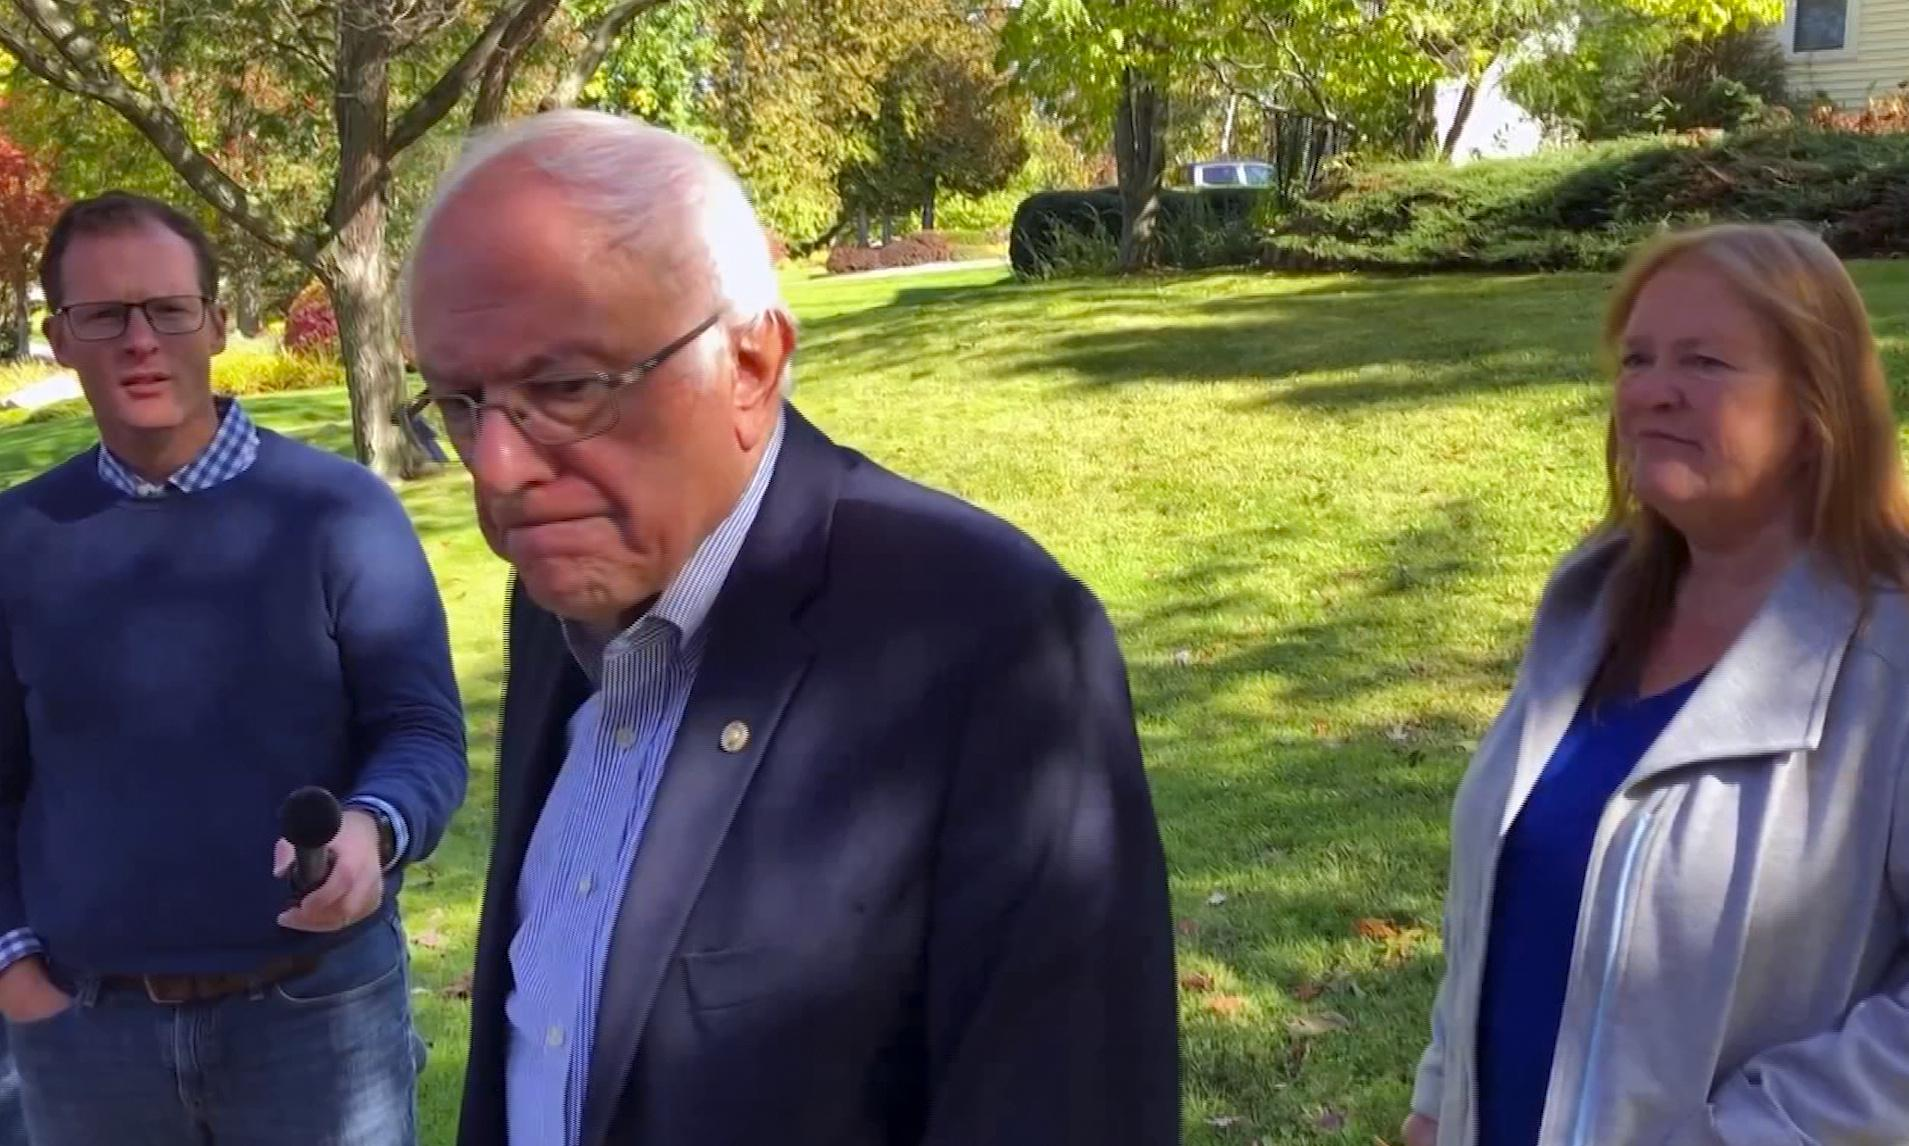 Sanders returns home after heart attack but will 'change the nature of campaign'